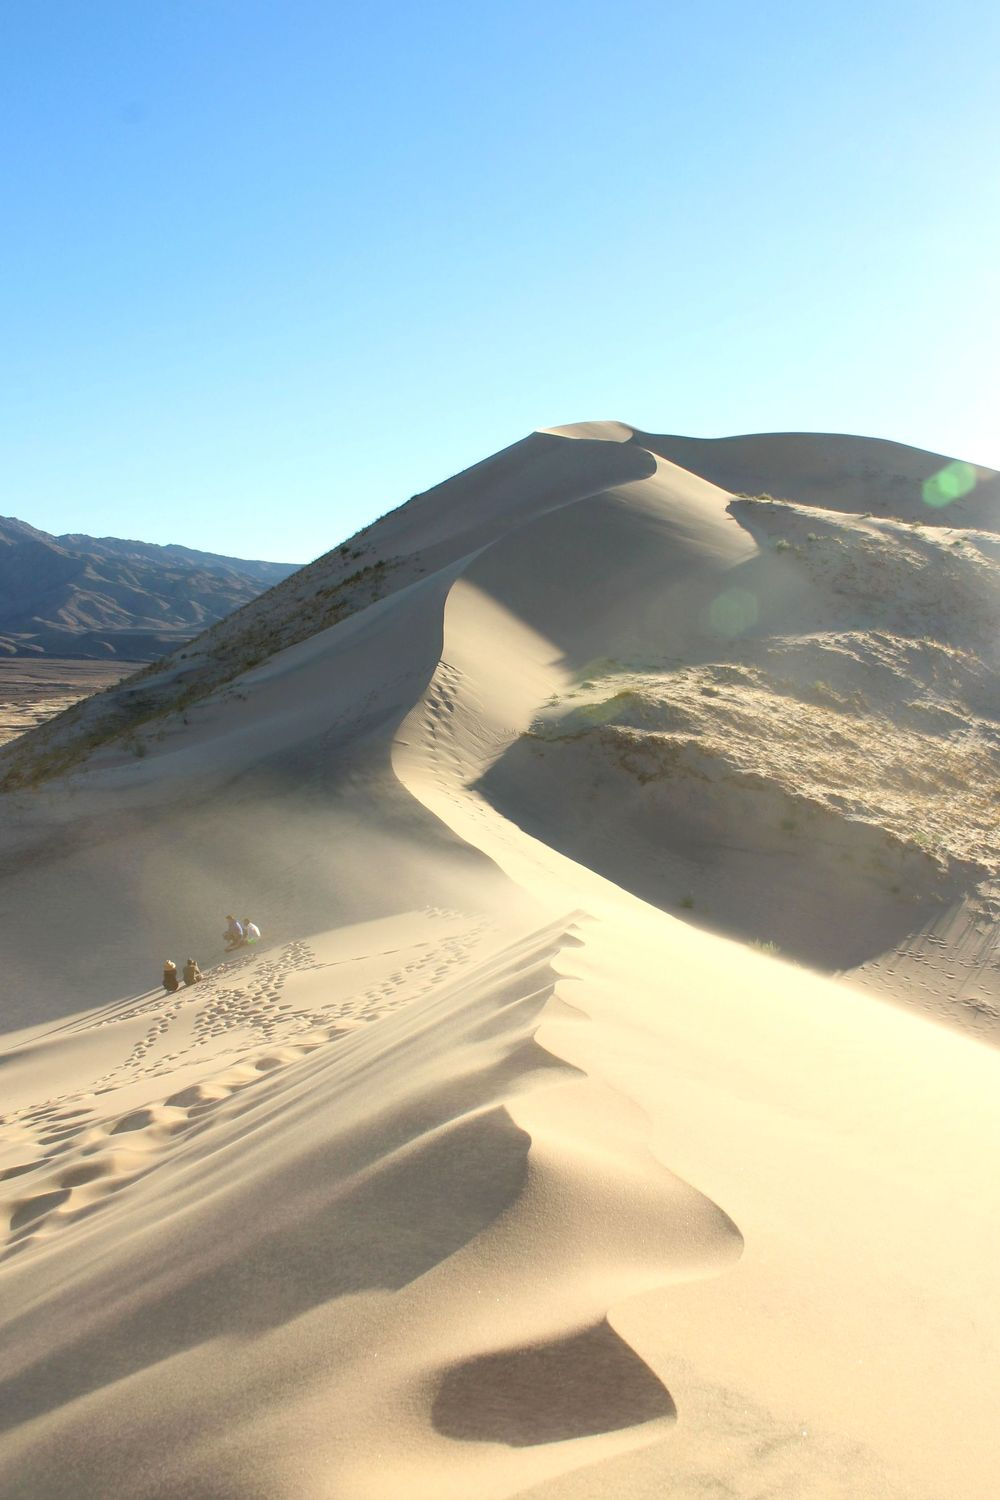 Kelso Dunes, Mojave National Reserve, CA, USA